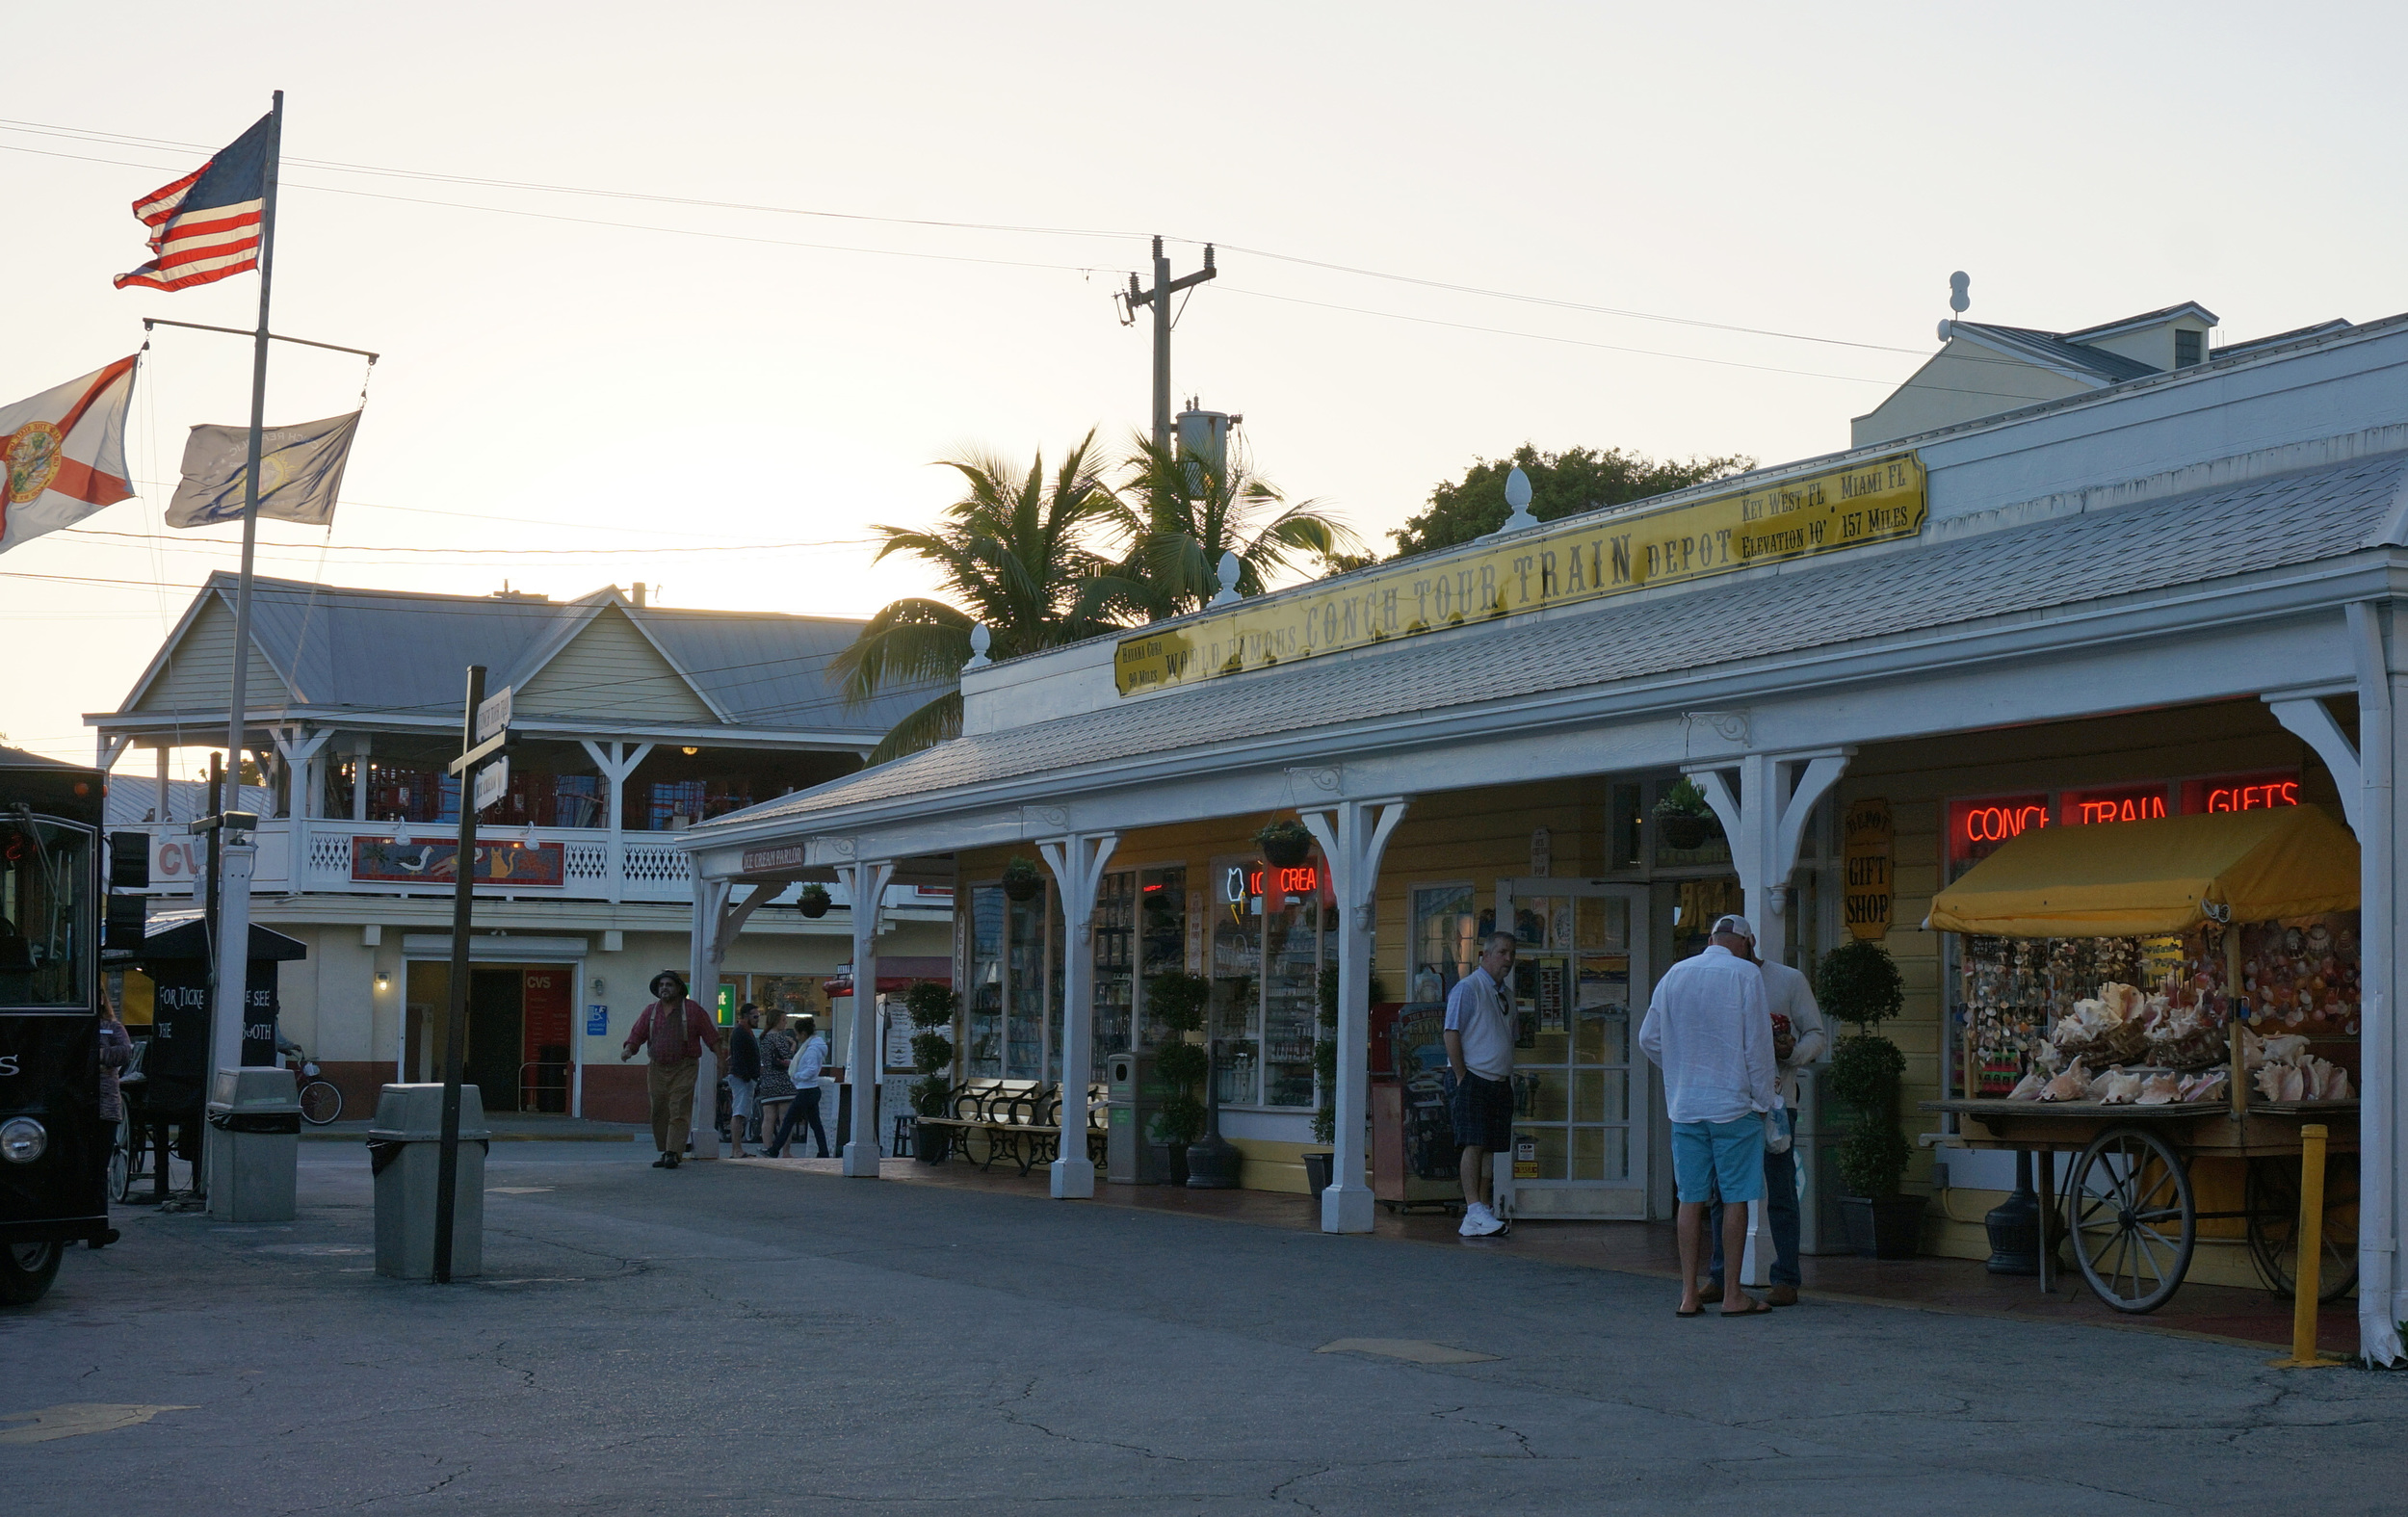 Conch Tour Train Depot